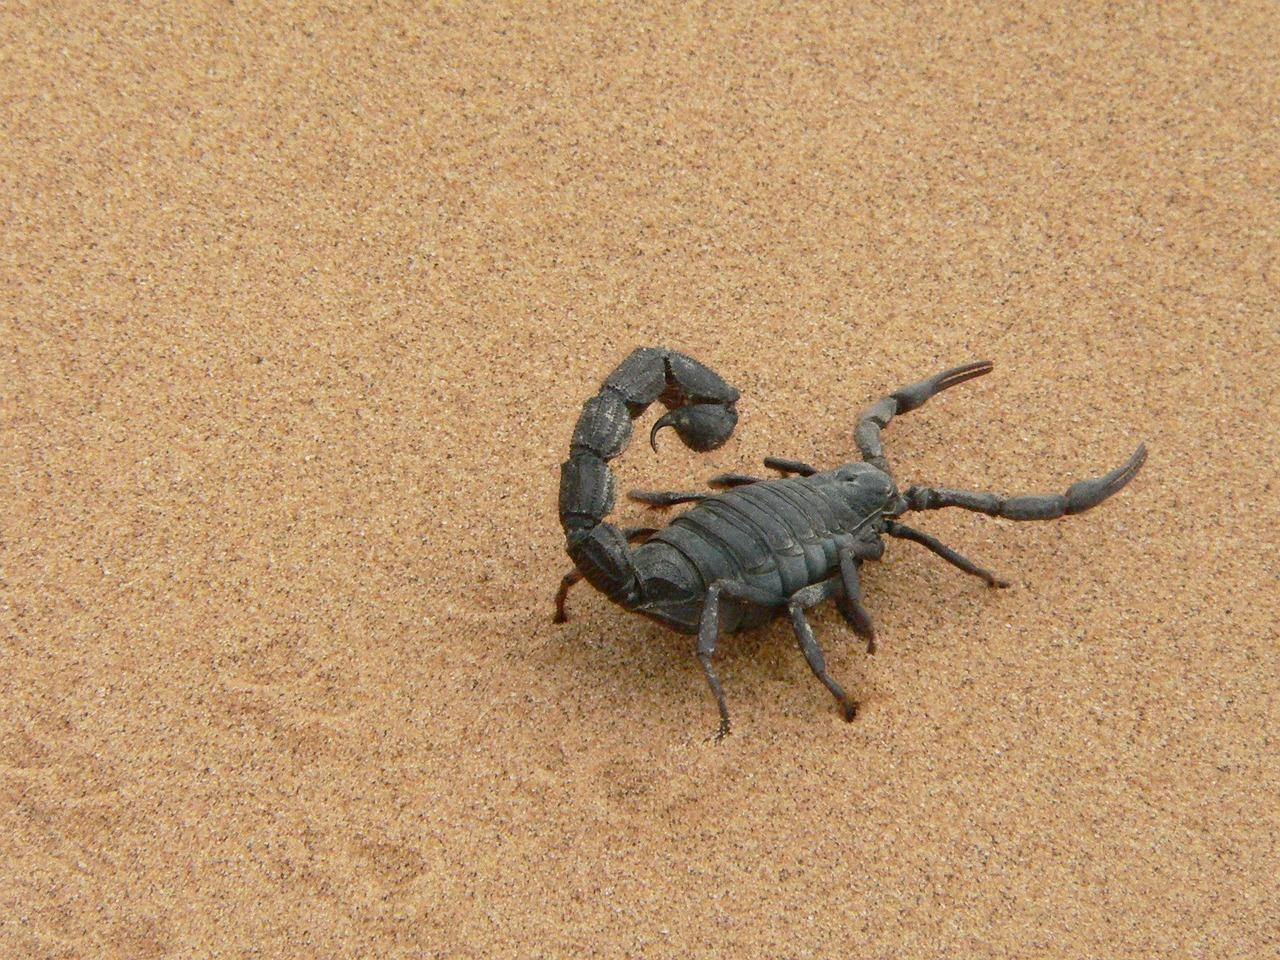 Couple finds poisonous scorpion in luggage after holiday in Namibia